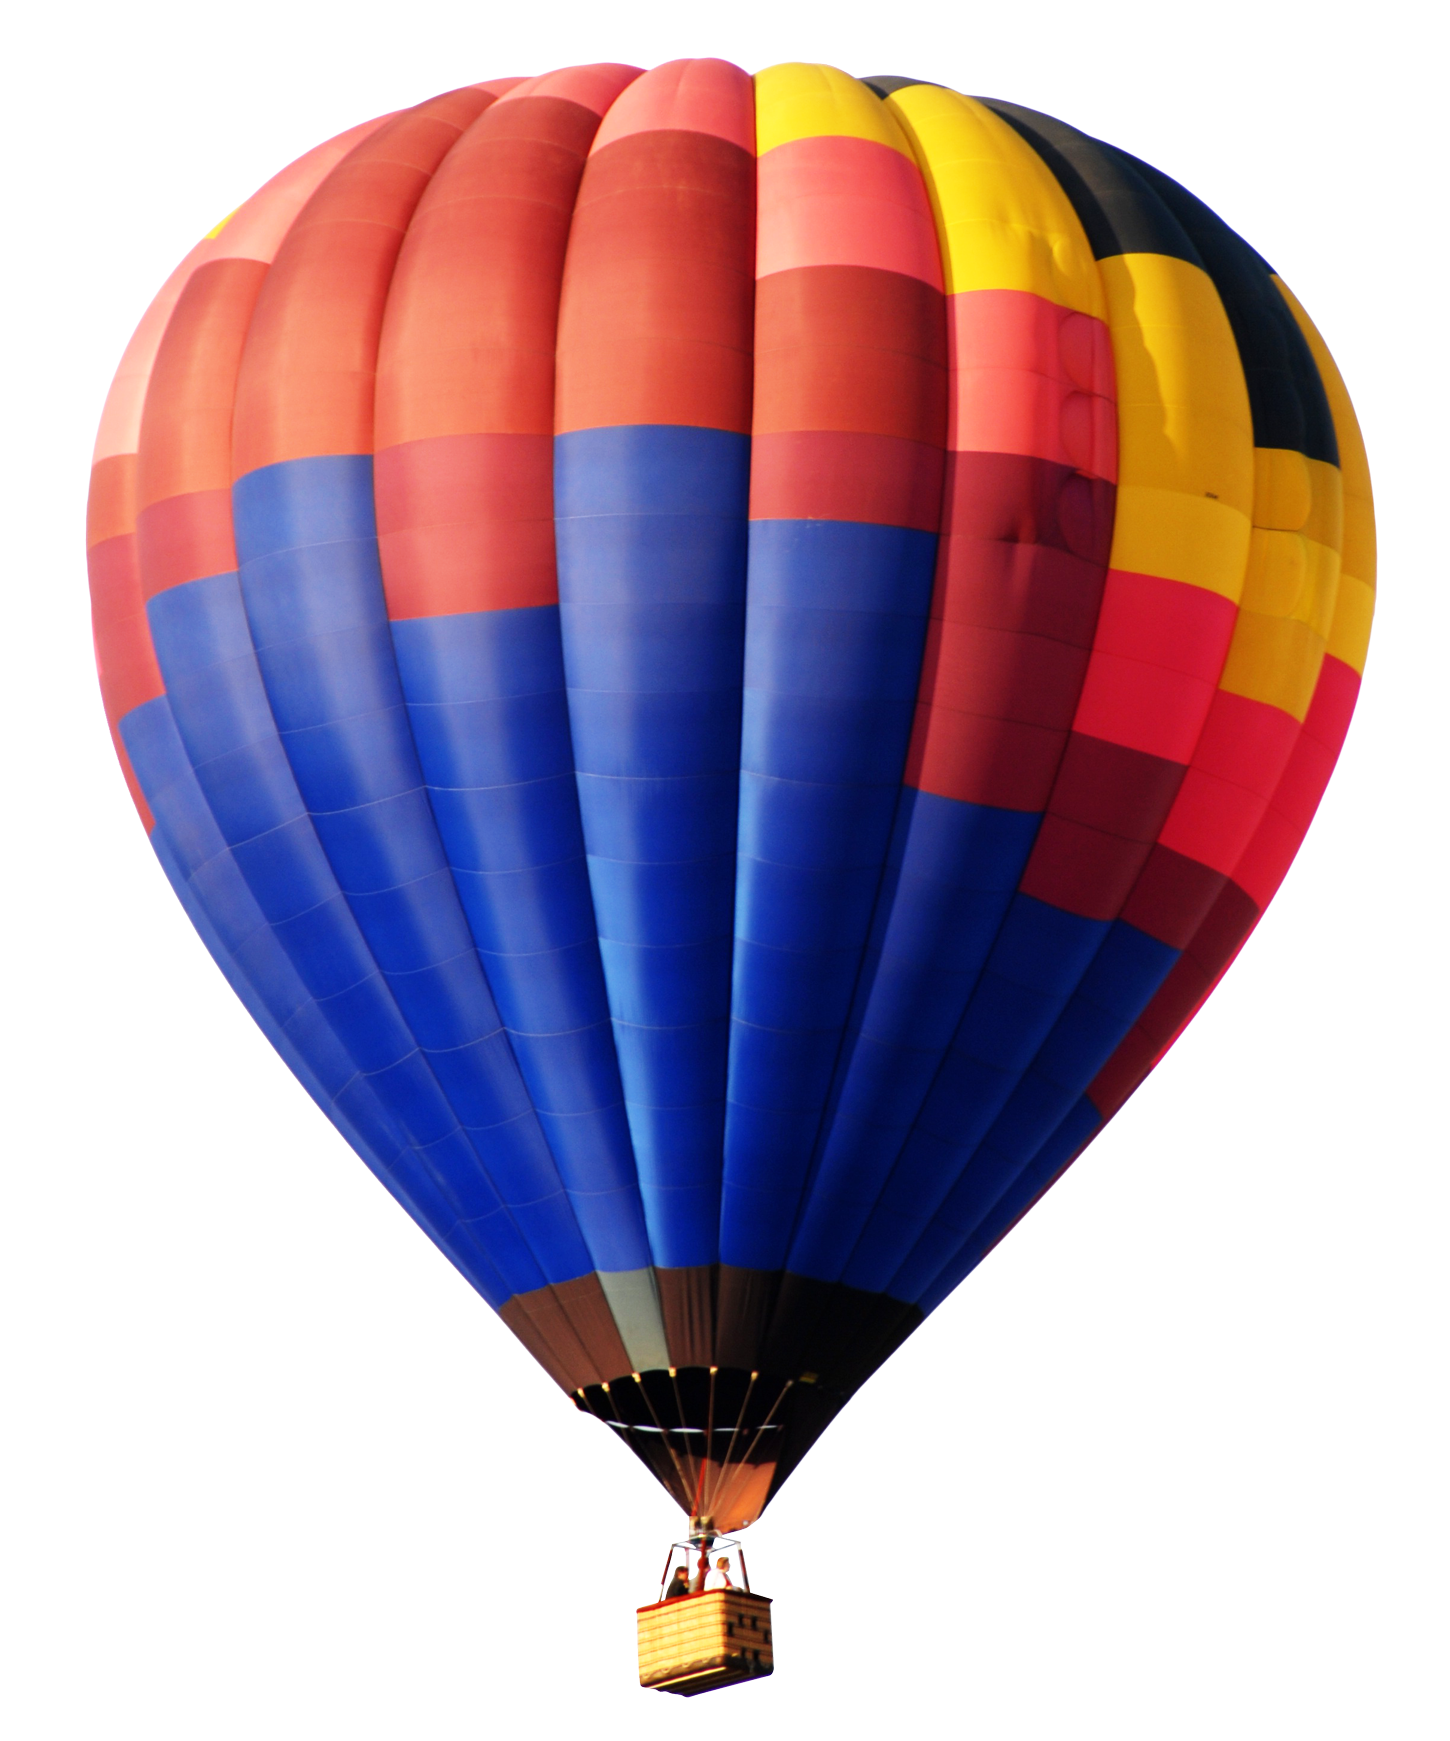 Air balloon png. Images free download